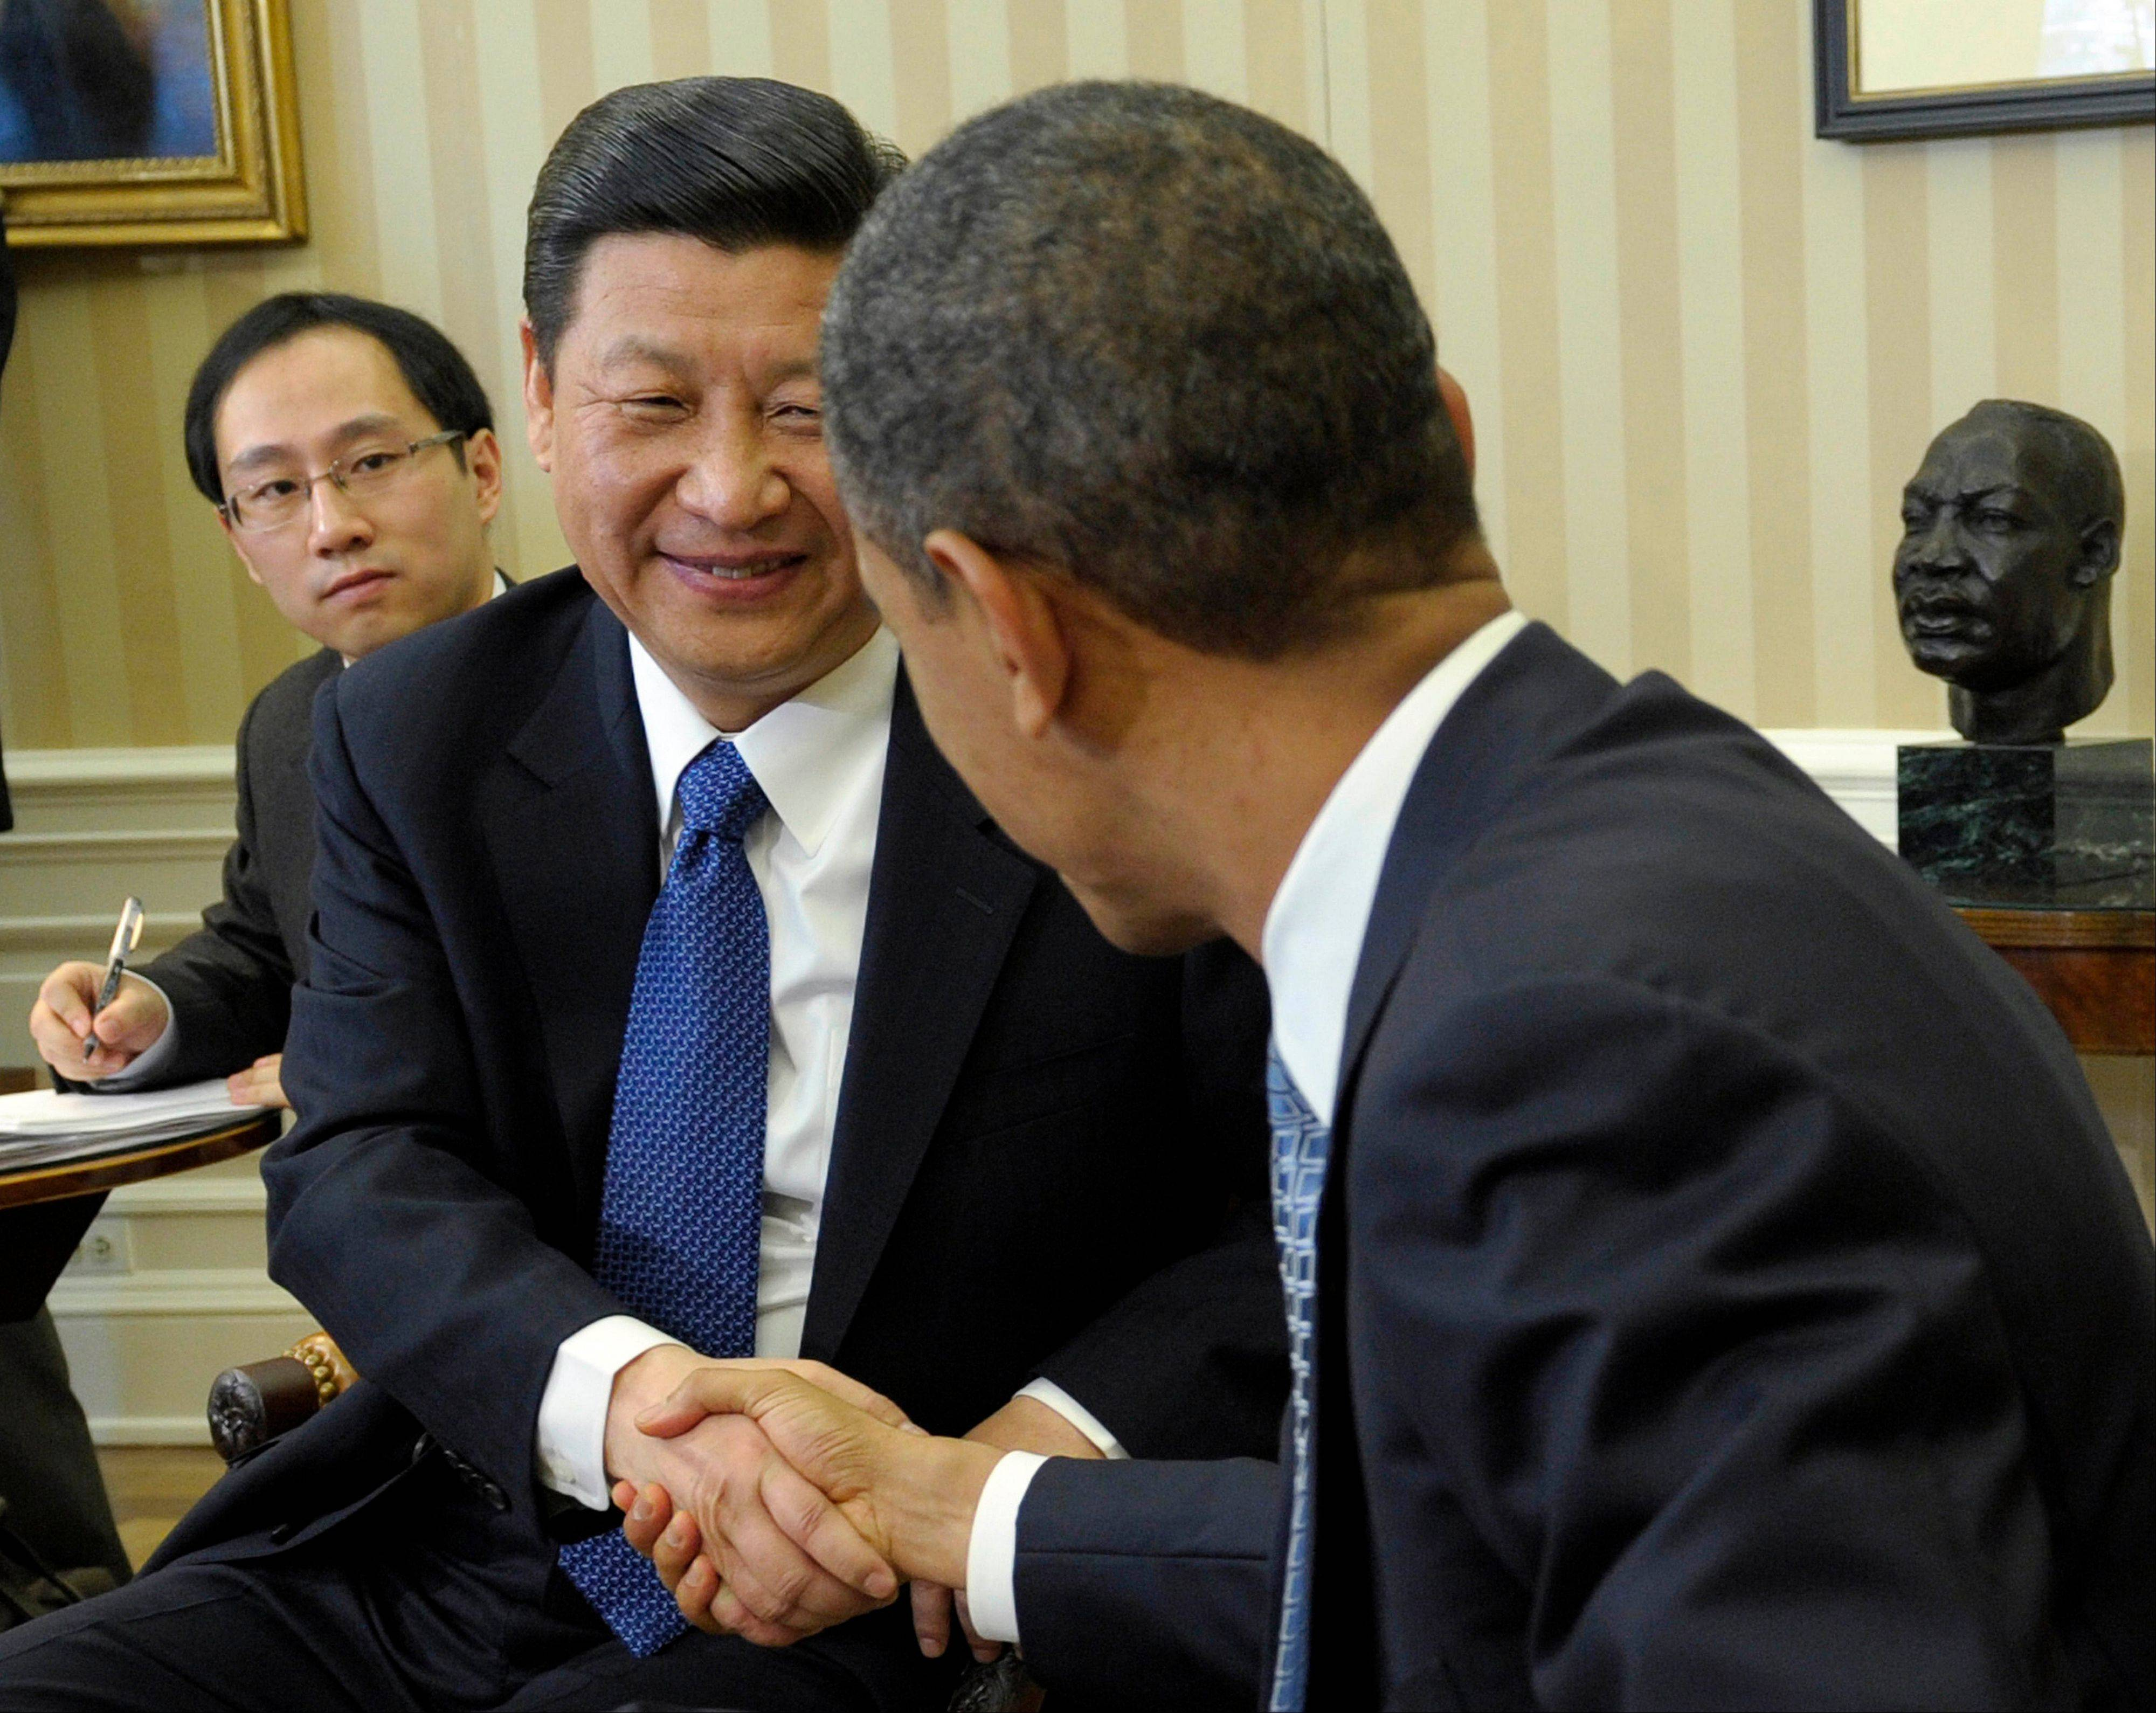 President Barack Obama and Chinese Vice President Xi Jinping, left, visit at the White House Feb. 14, 2012. When Obama meets Jinping again this week, he will be visiting with China's president — and cybersecurity will be high among issues that will be raised.